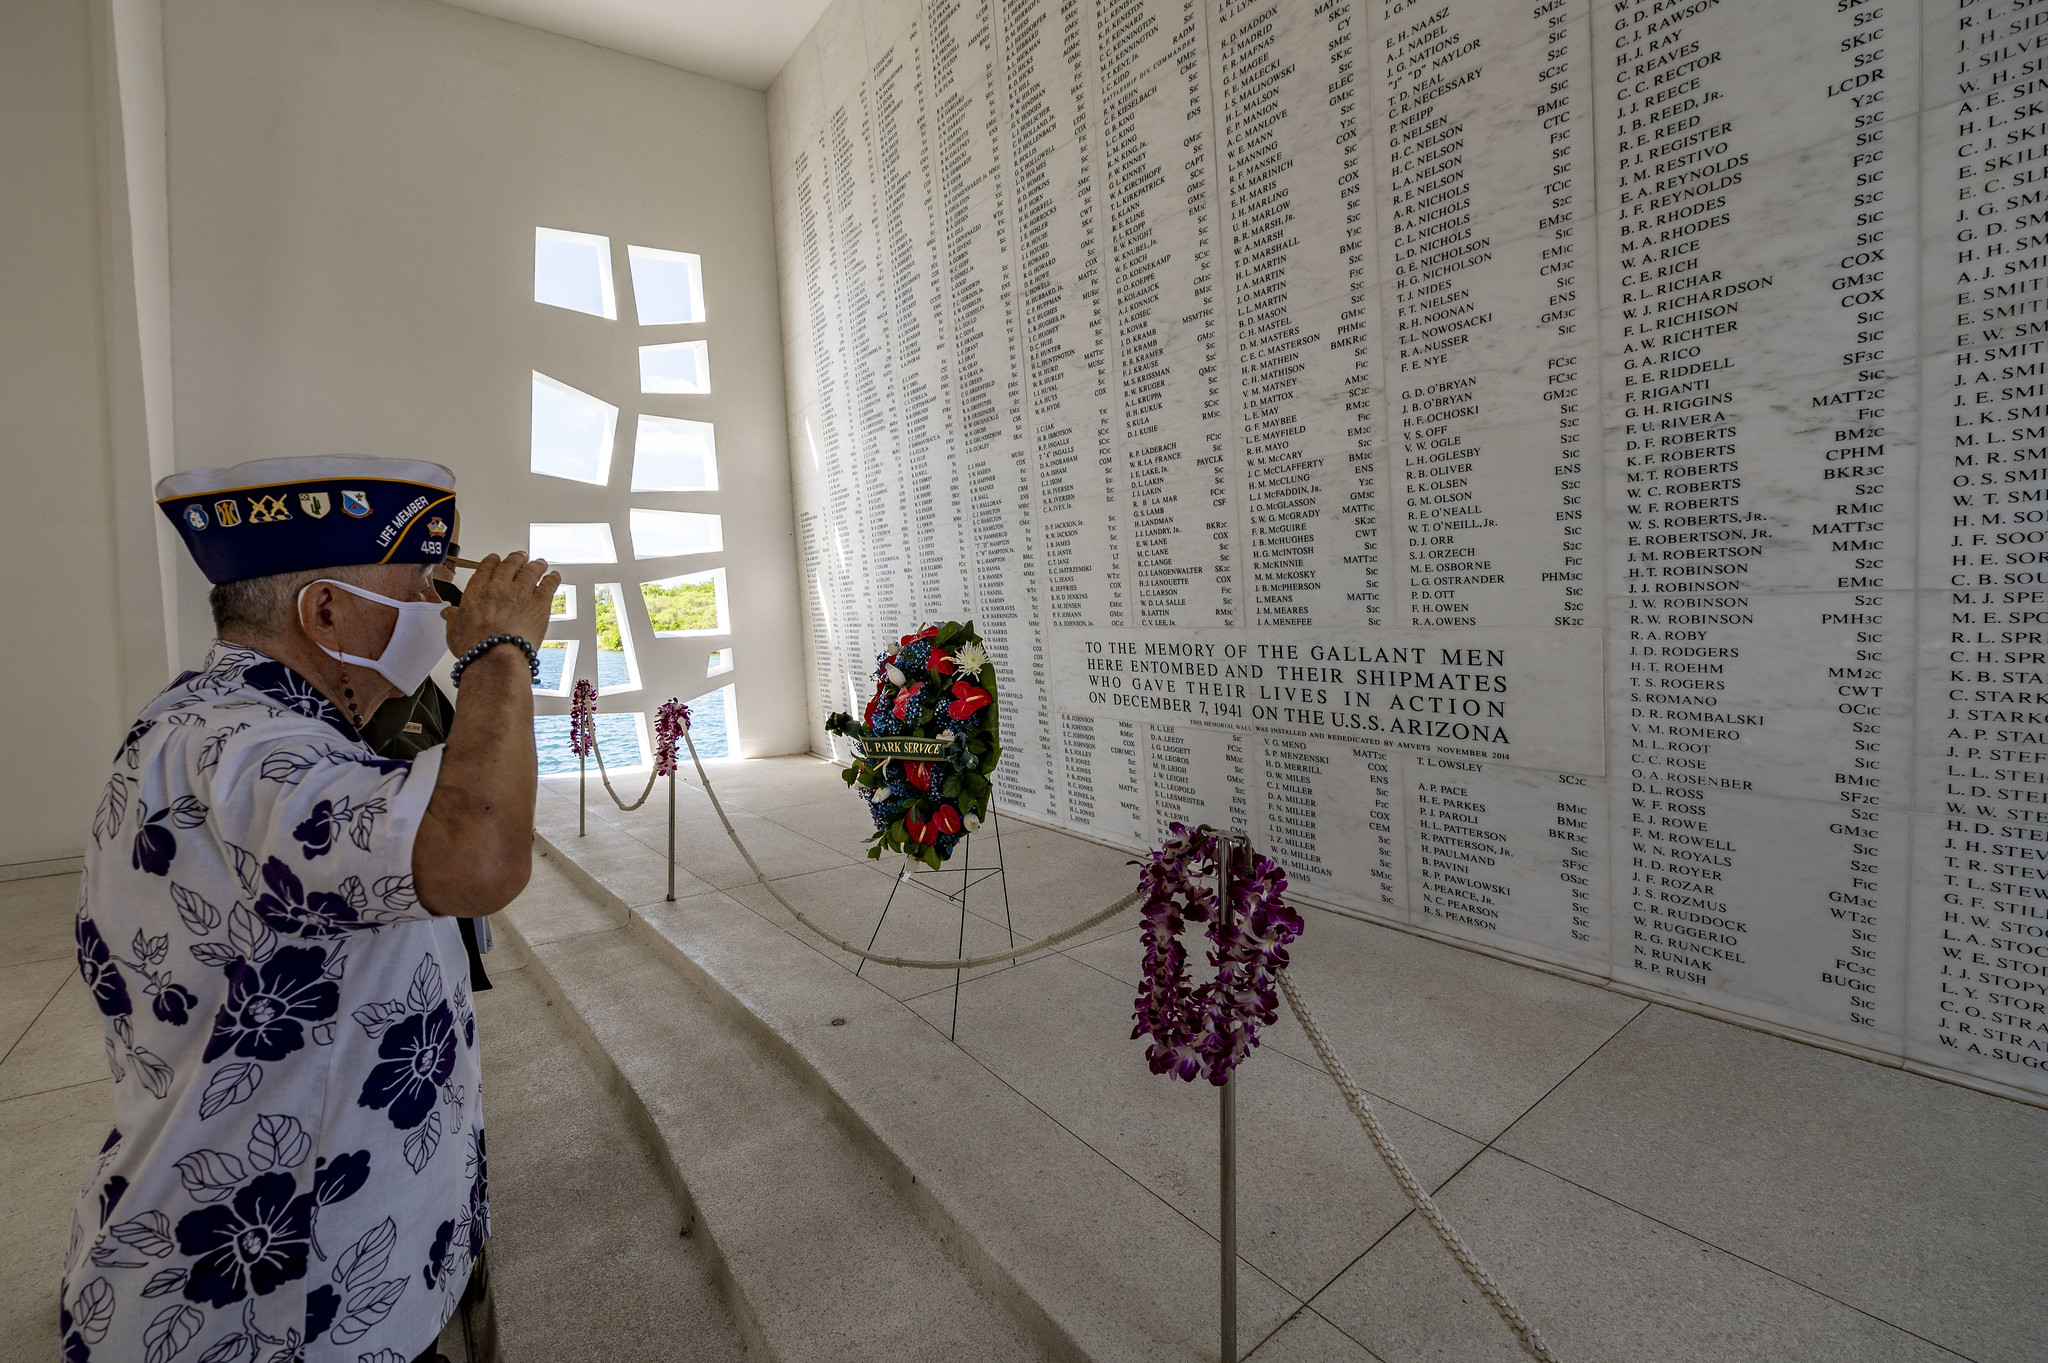 Henry Lee, a Pearl Harbor survivor and U.S. Army veteran, renders honors in the USS Arizona Memorial shrine room on Dec. 7, 2020, as part of the 79th Pearl Harbor Day Remembrance Day ceremony in Honolulu, Hawaii. (MC2 Charles Oki/Navy)